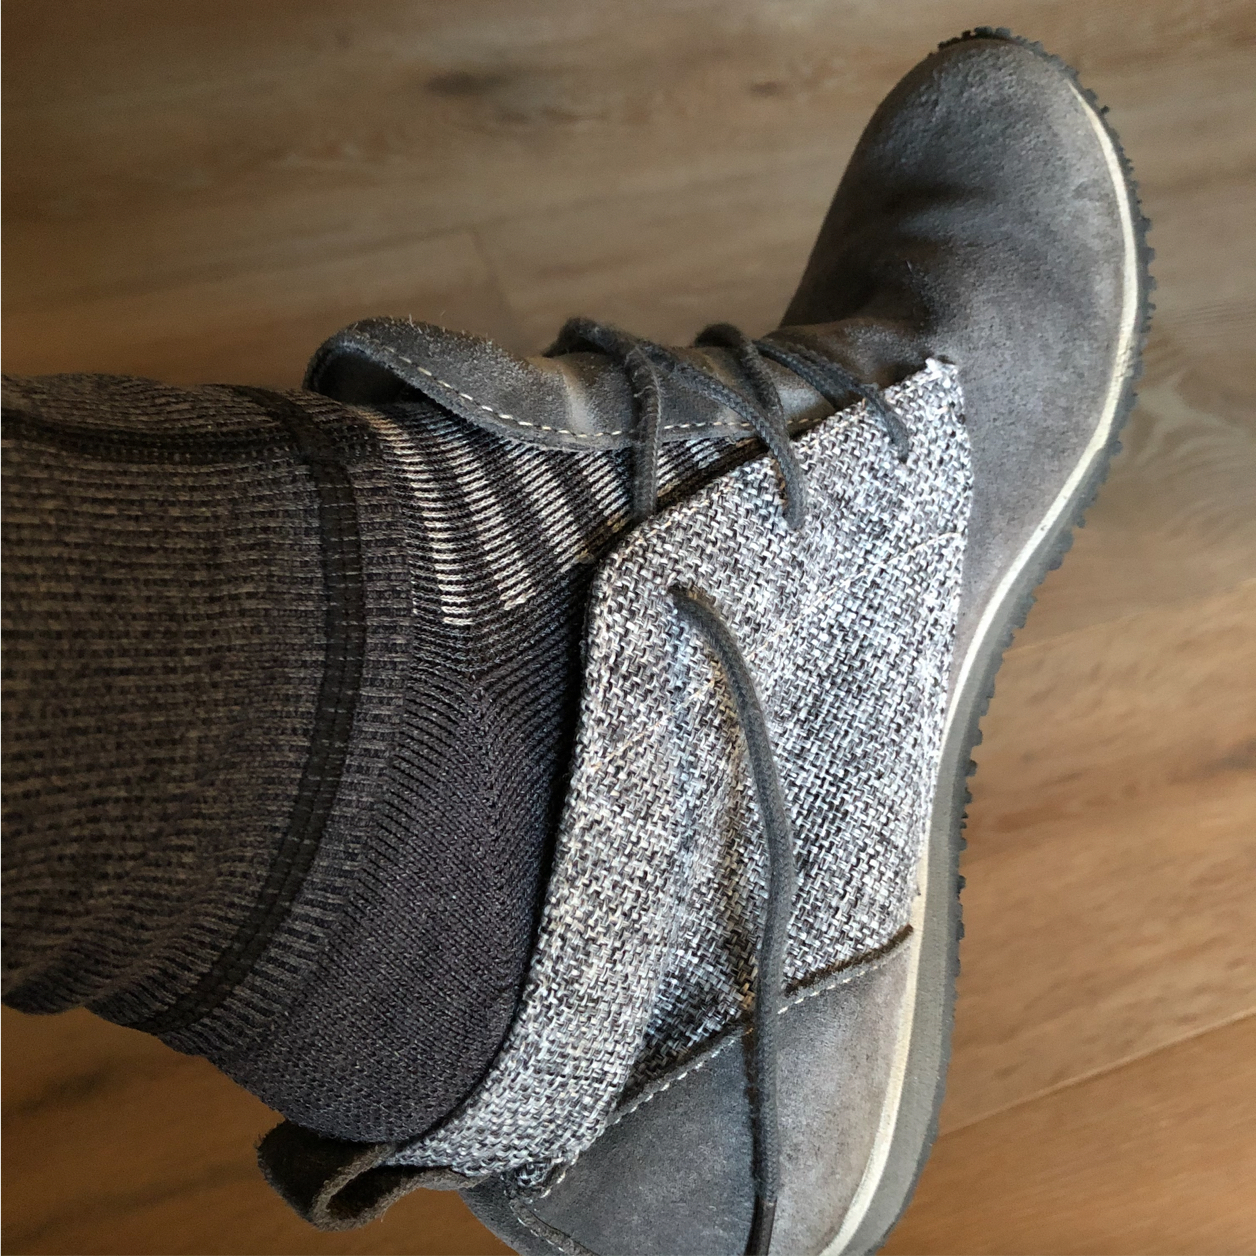 Close up of a grey suede shoe with grey and white striped socks with grey leggings